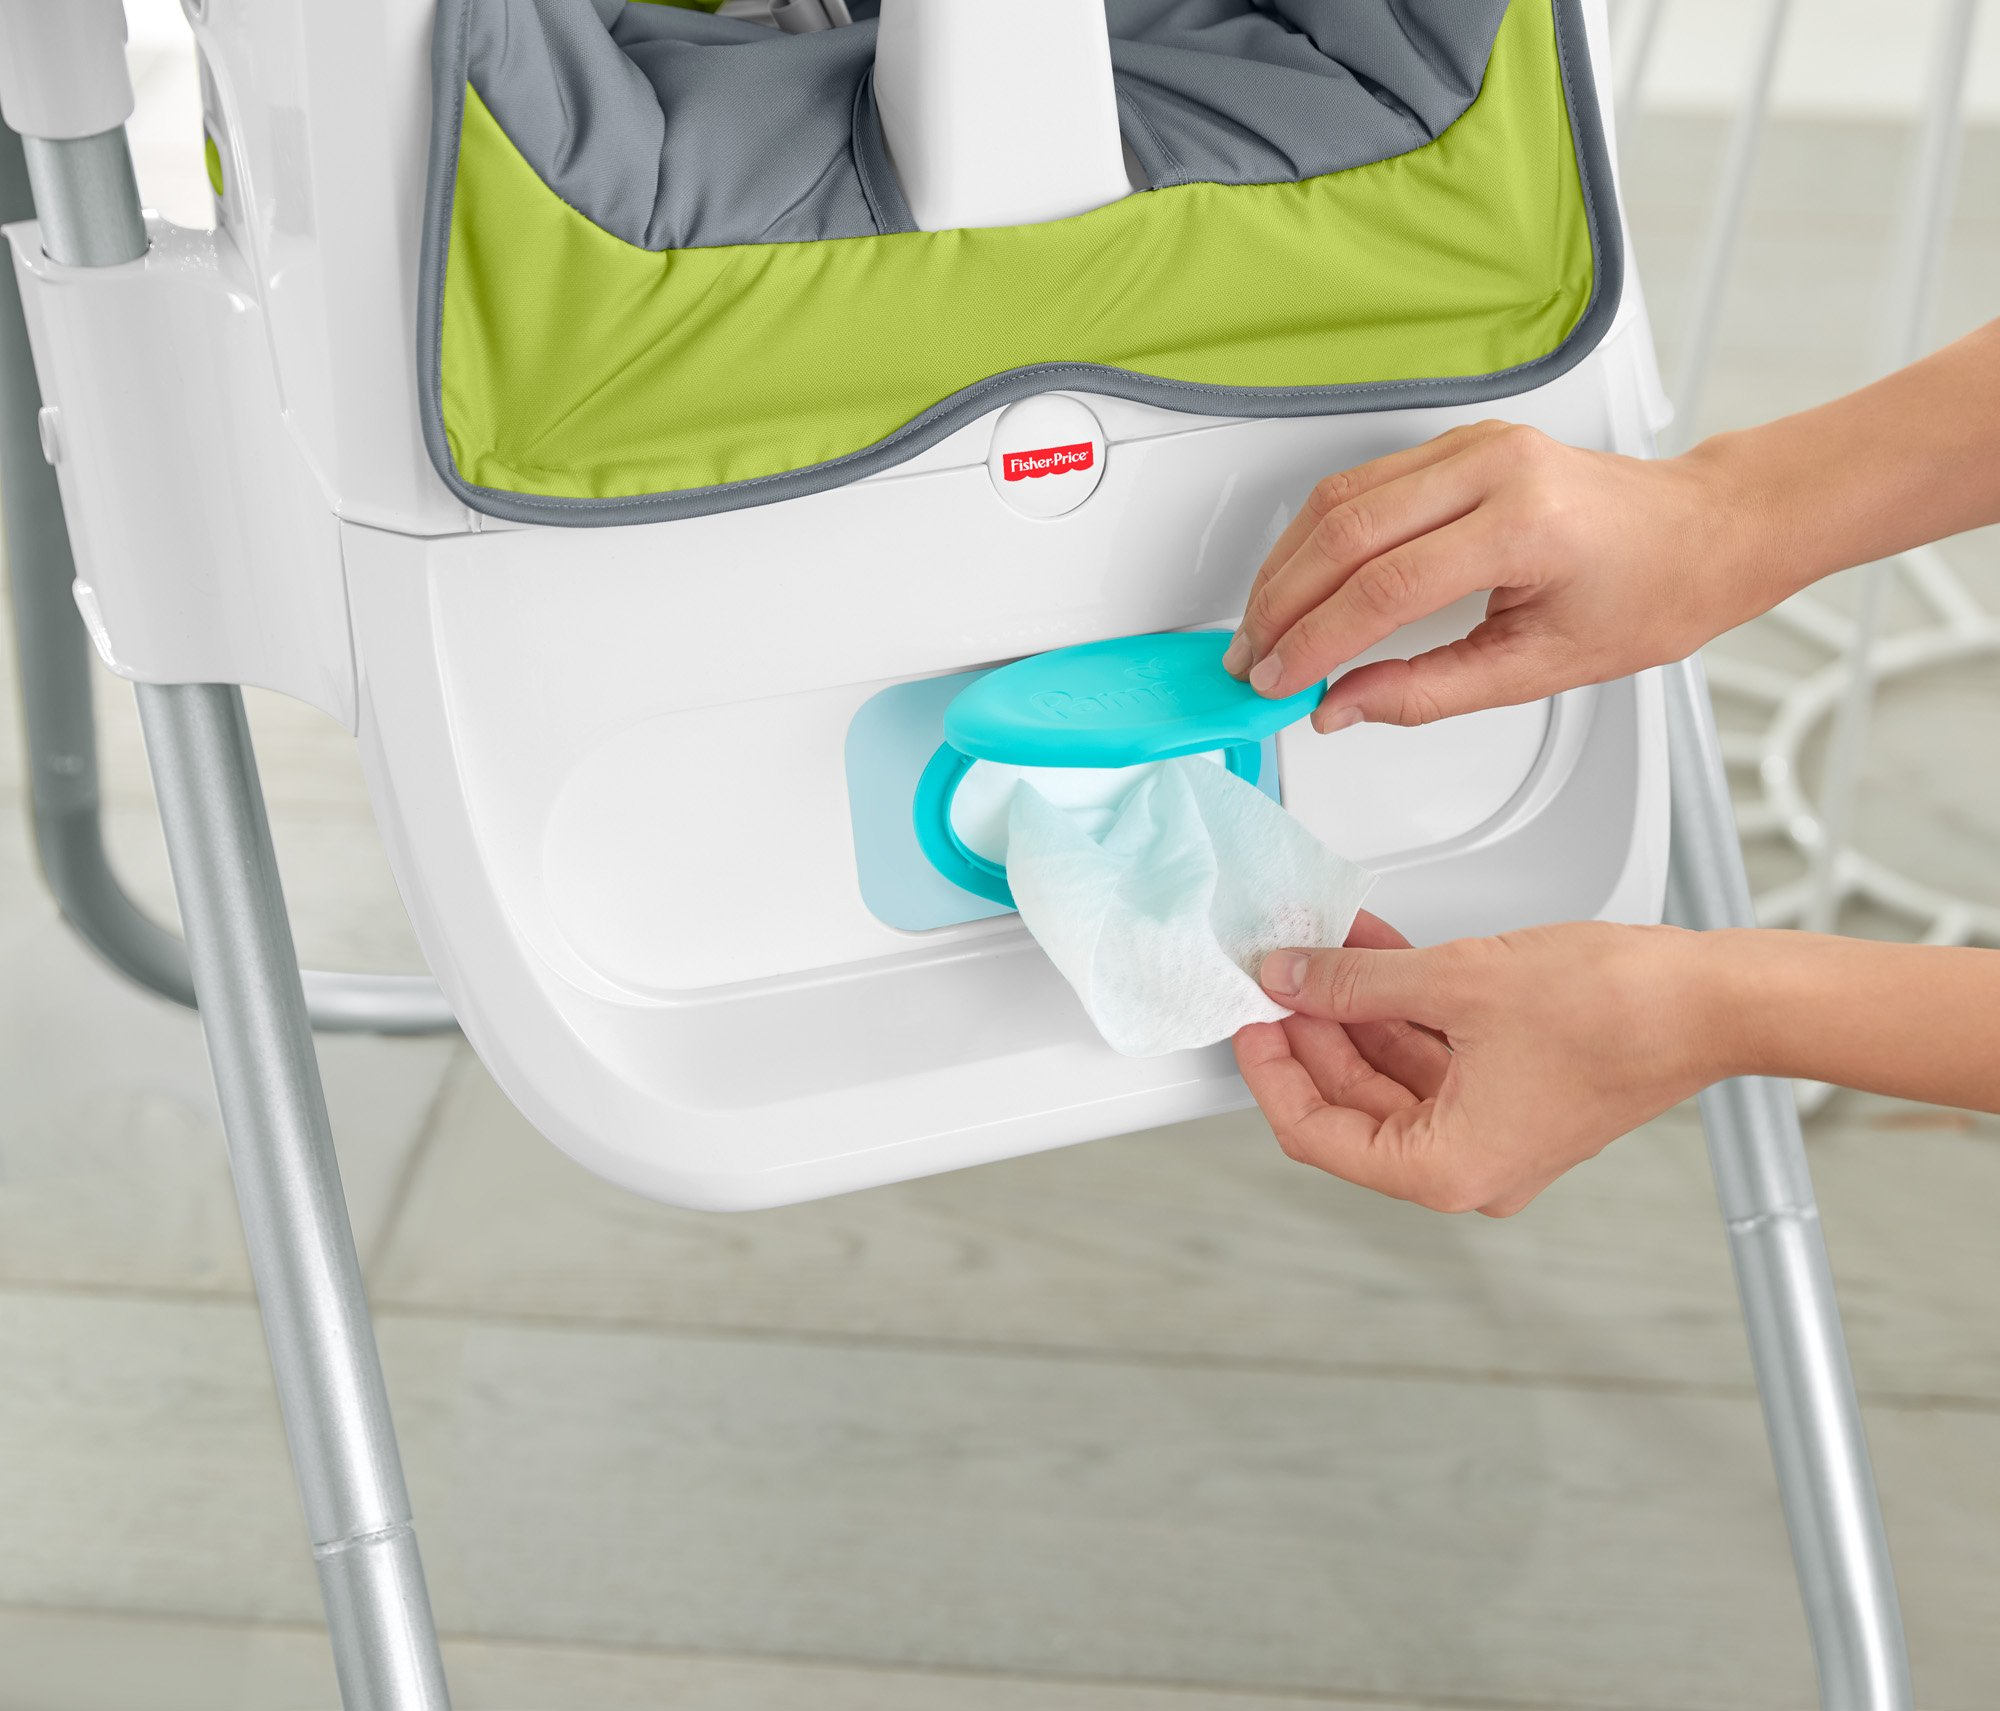 Fisher-Price 4-in-1 Total Clean High Chair, Green/Gray by Fisher-Price (Image #14)